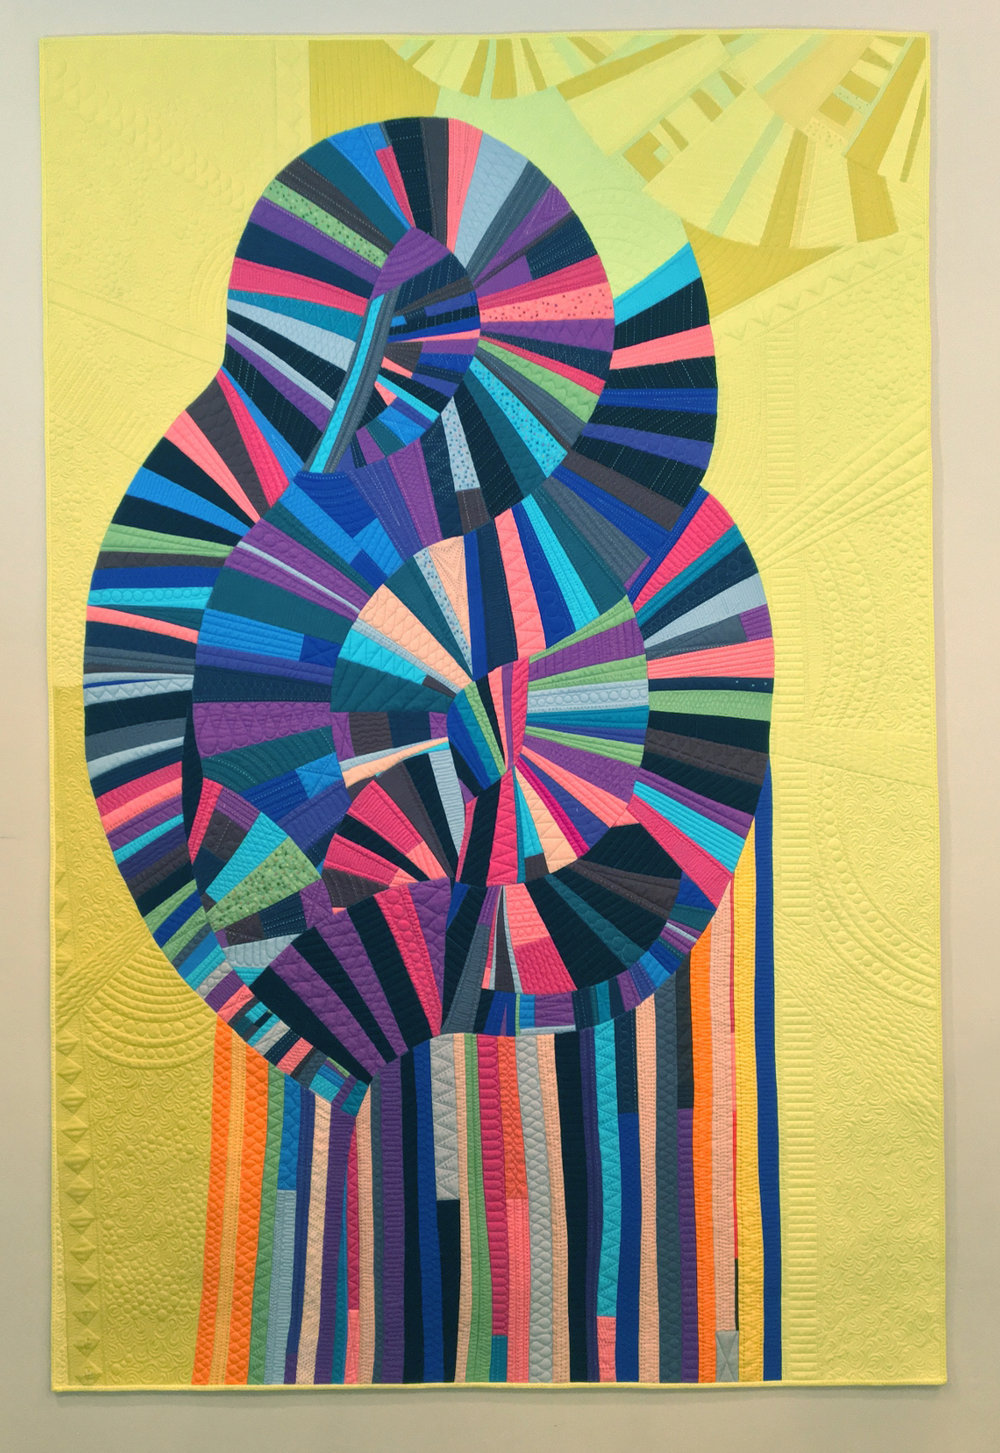 """Madonna  49.5"""" x 75.5"""" Pieced by Brittany Bowen Burton Quilted by Natalia Bonner Millcreek, UT, United States Individual MQG Member"""